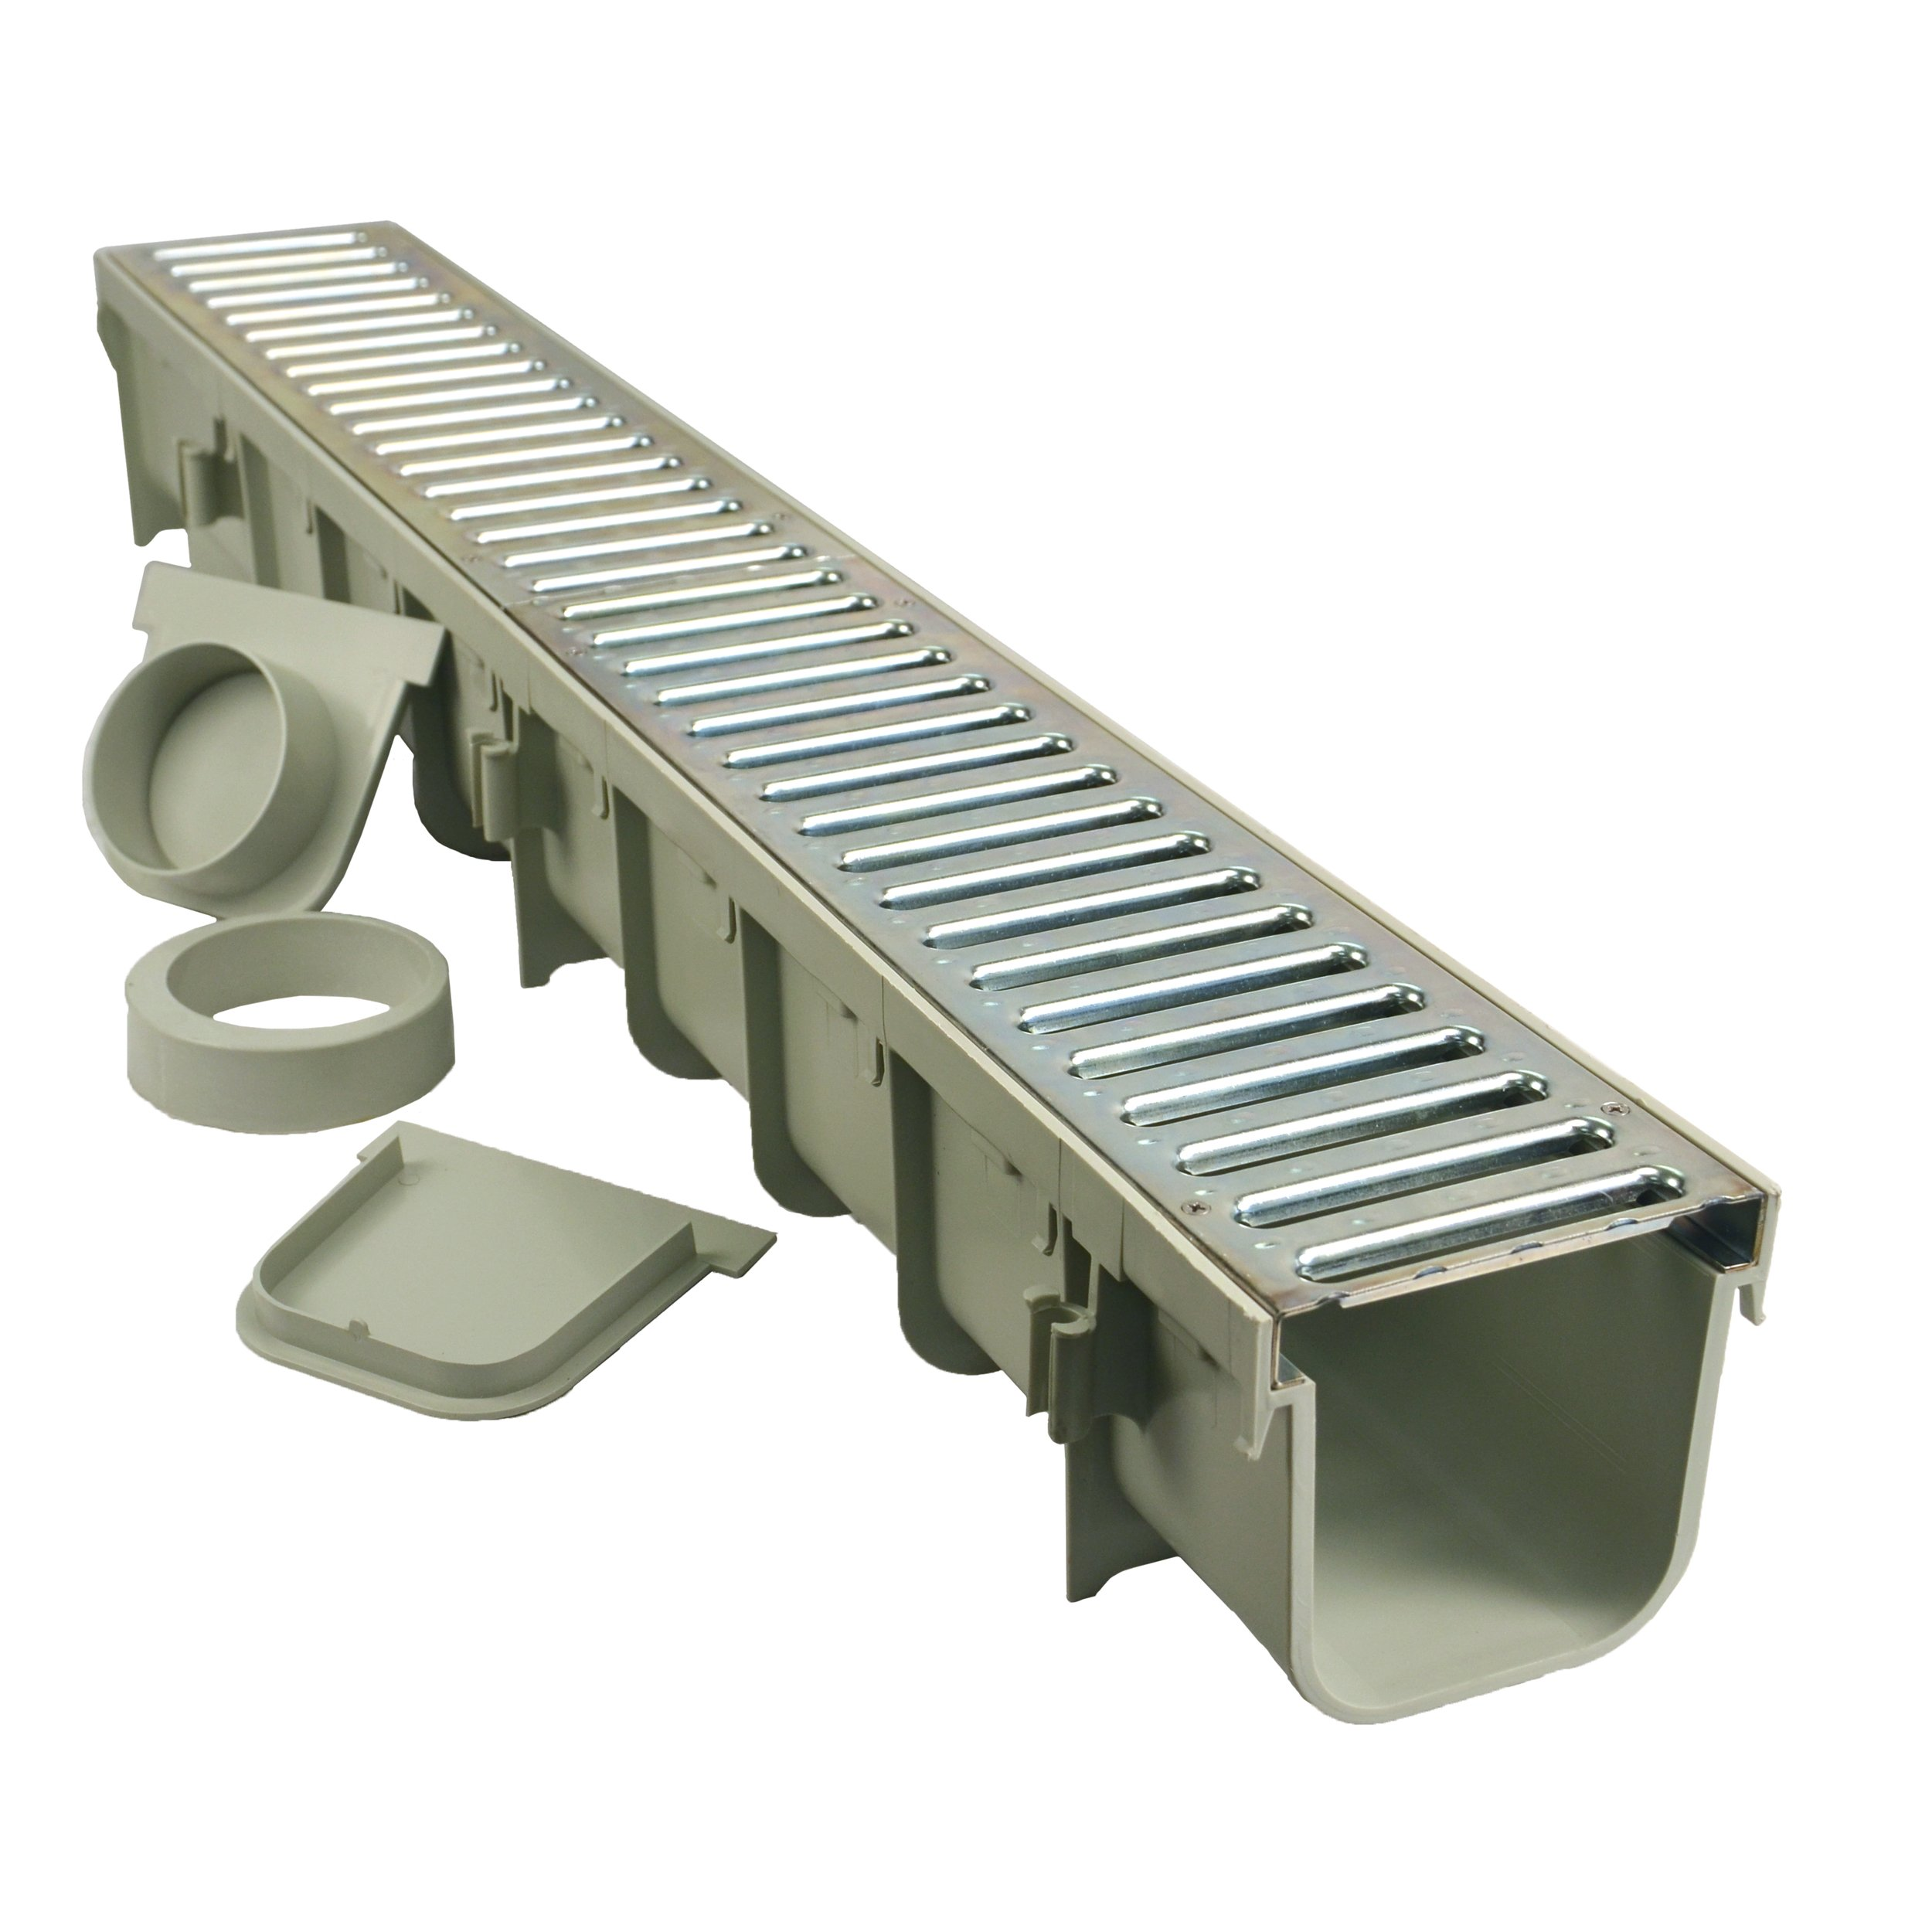 NDS 864GMTL 5'' Pro Channel Drain Kit with Metal Grate